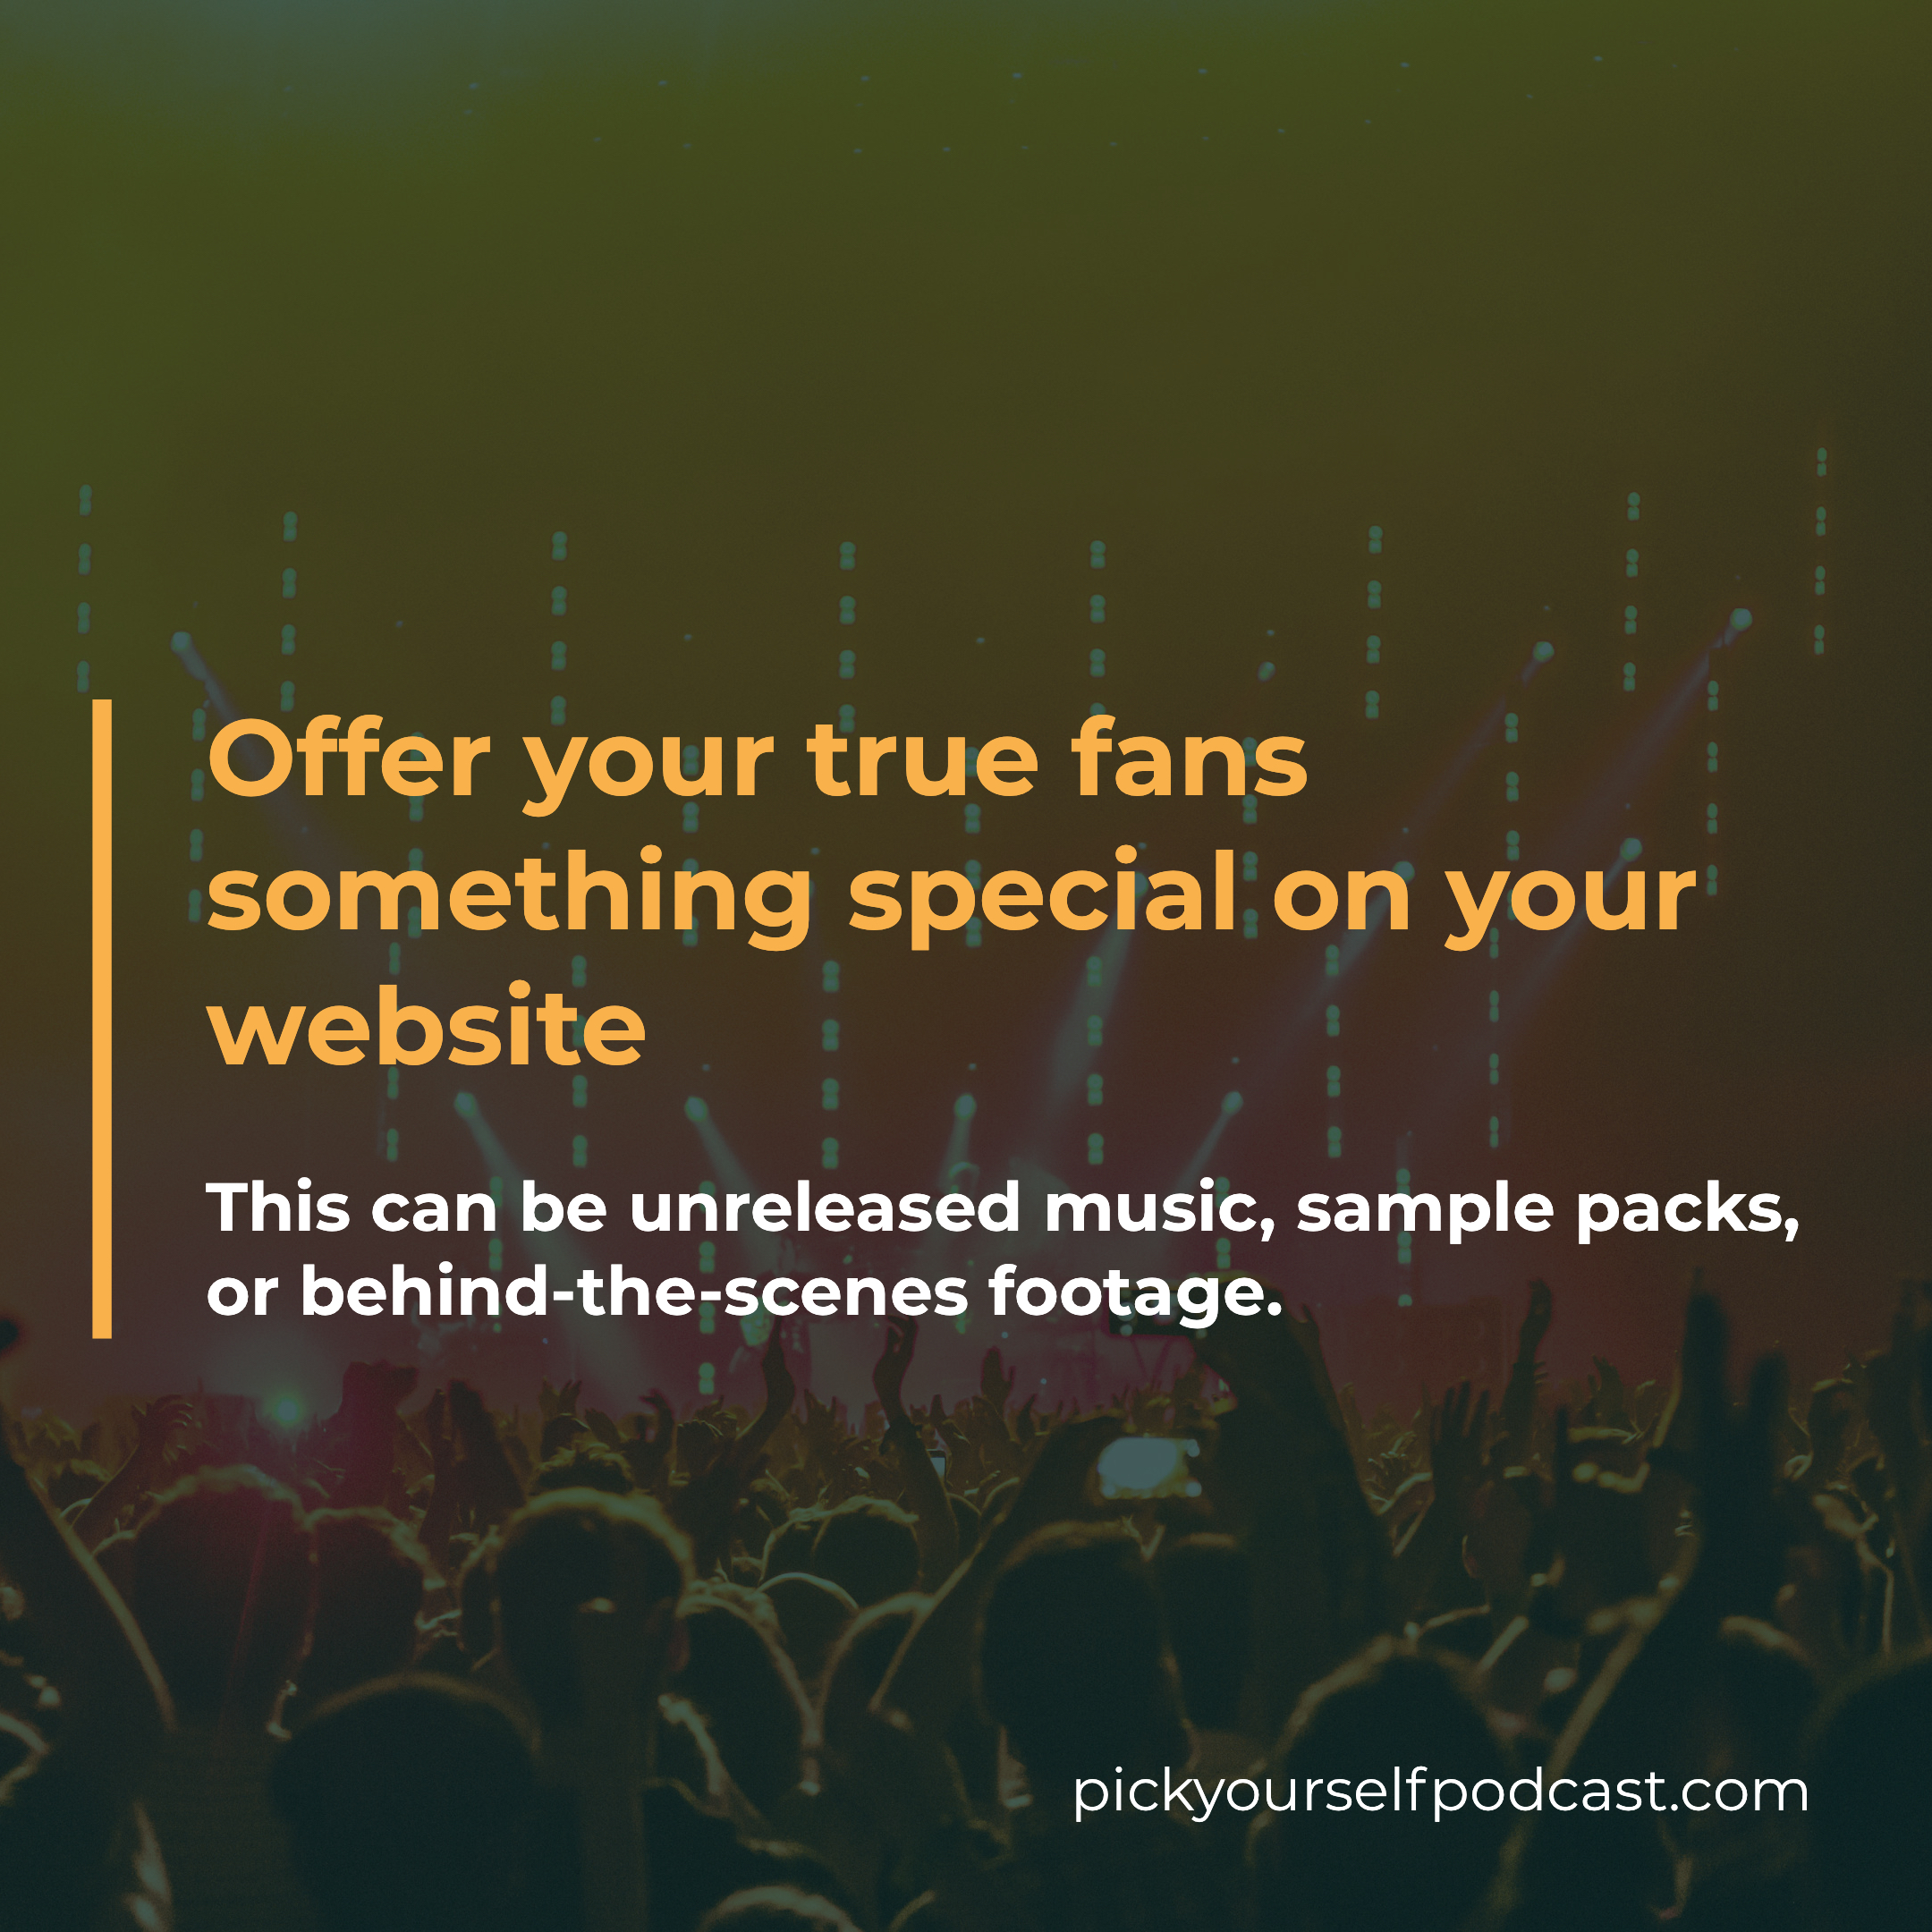 Offer your true fans something special on your website to deepen the relationship.